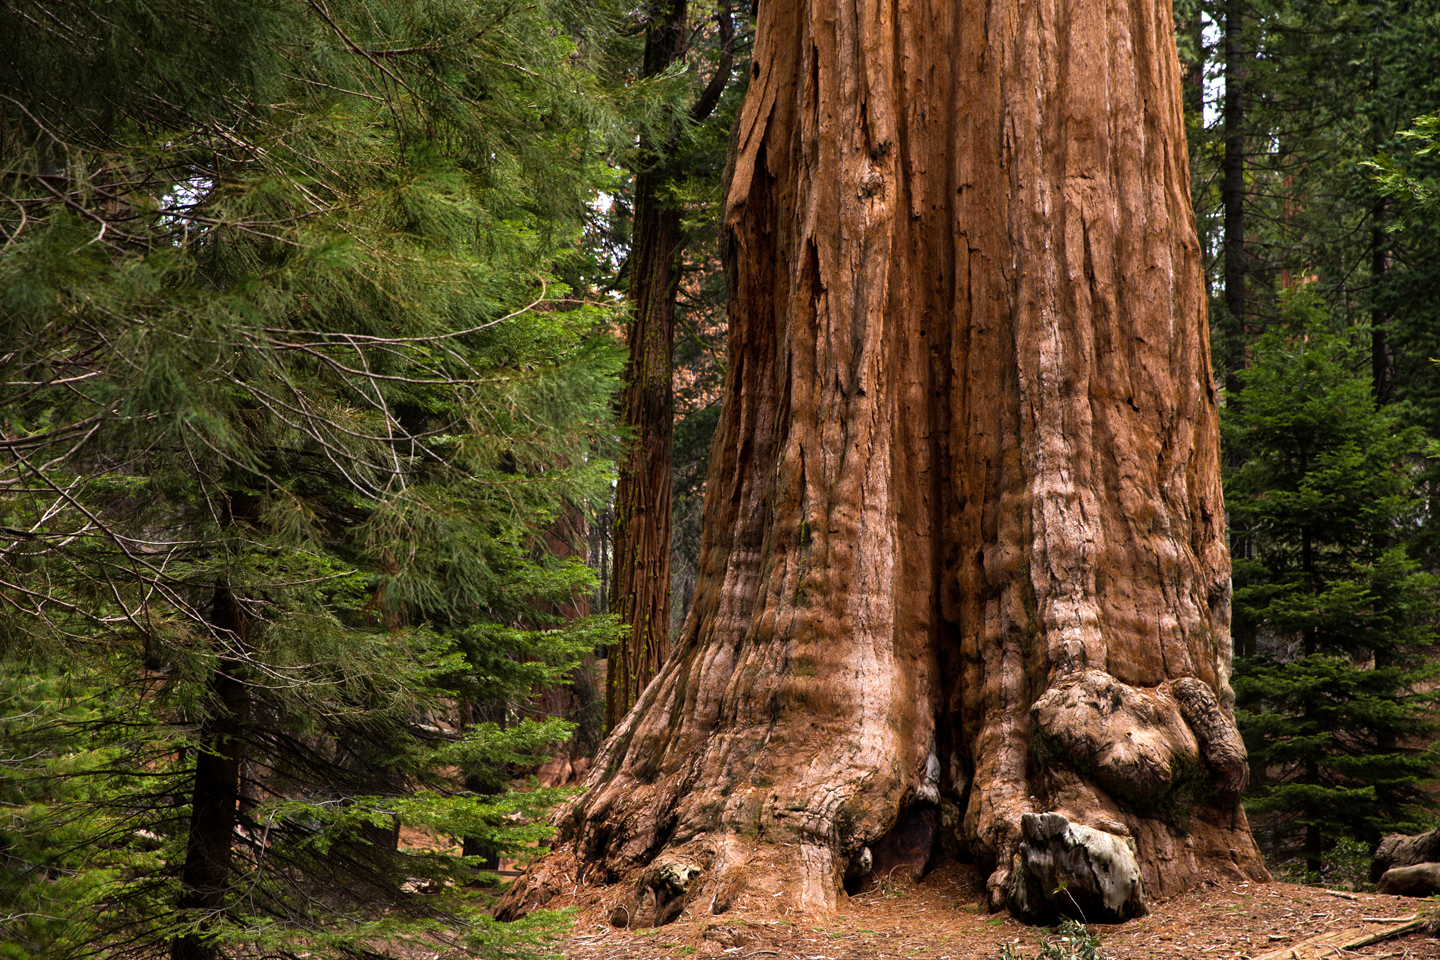 Sequoia-National-Park-Trees-Trunk-Green